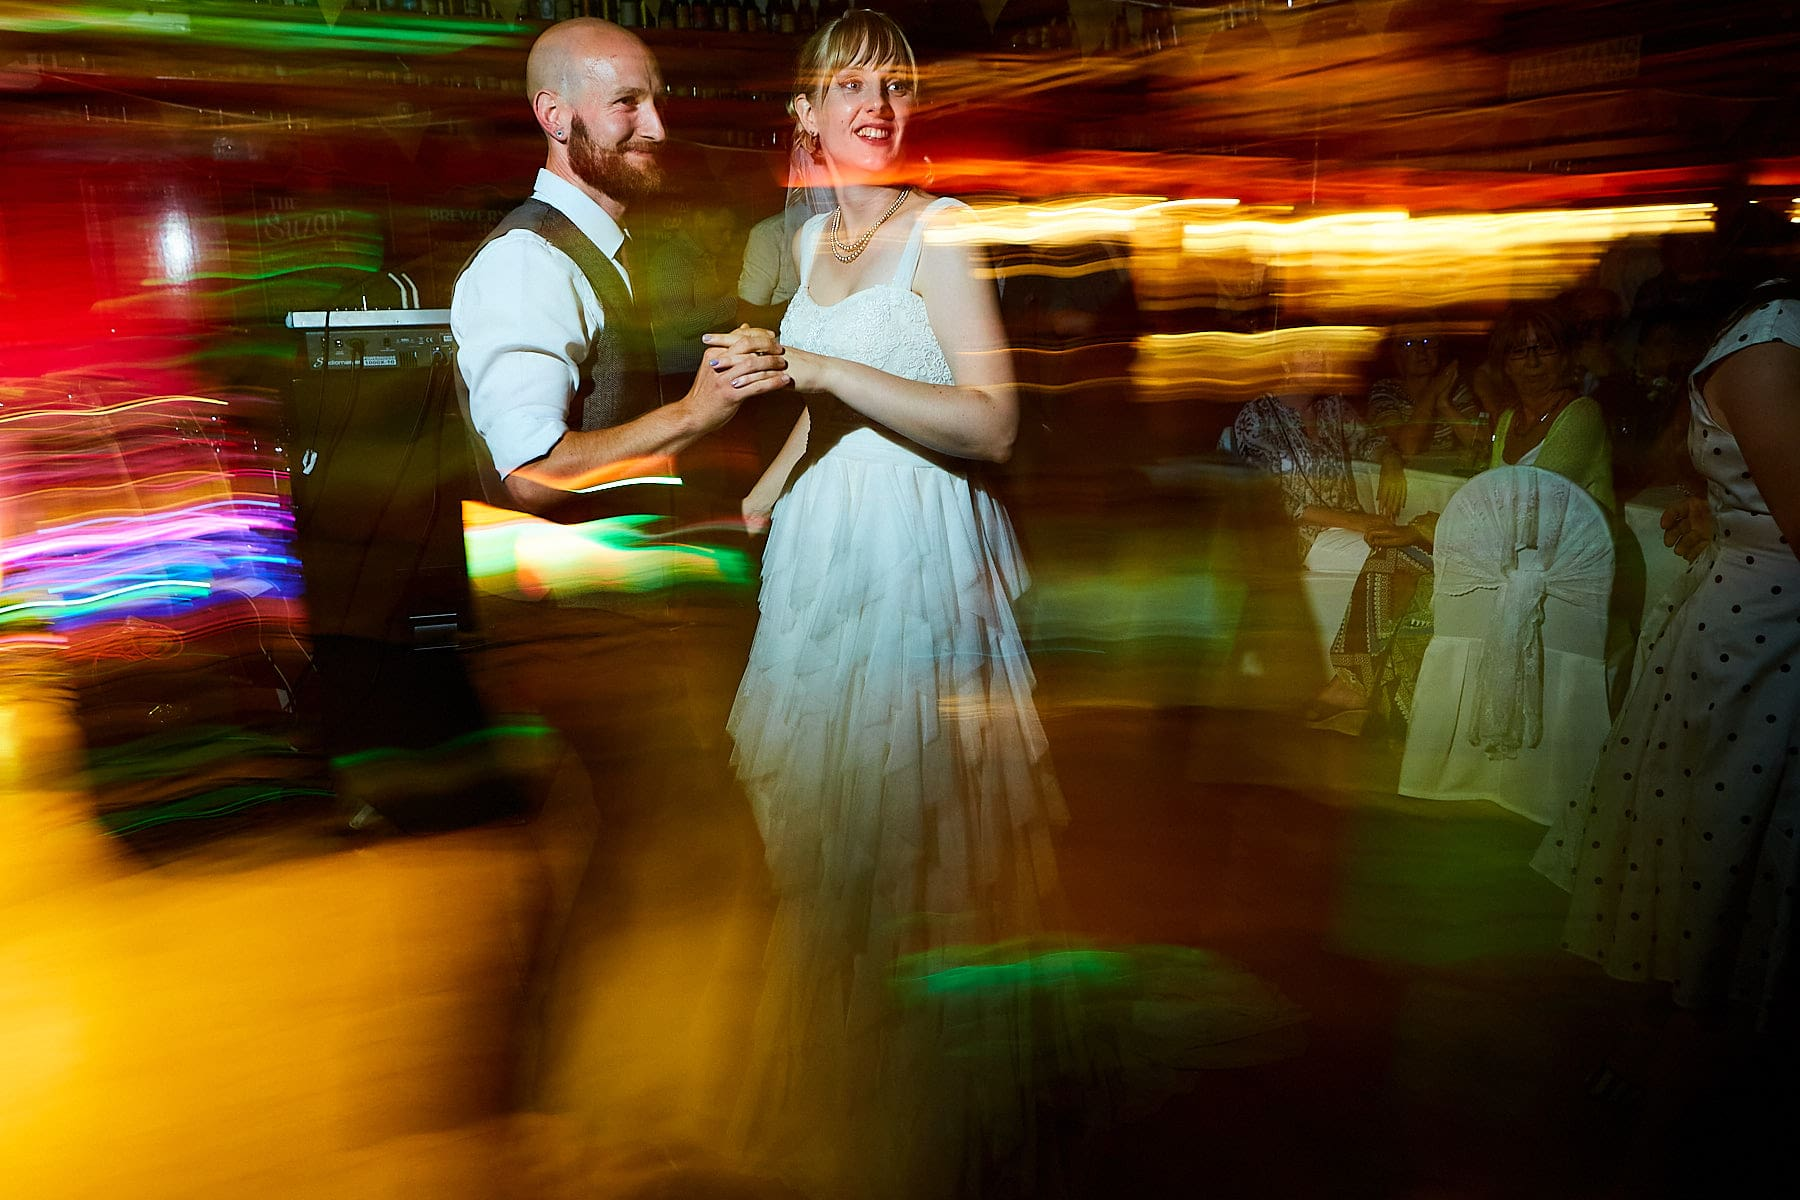 A couple dance on their wedding day agains a slow shutter speed creating a light effect